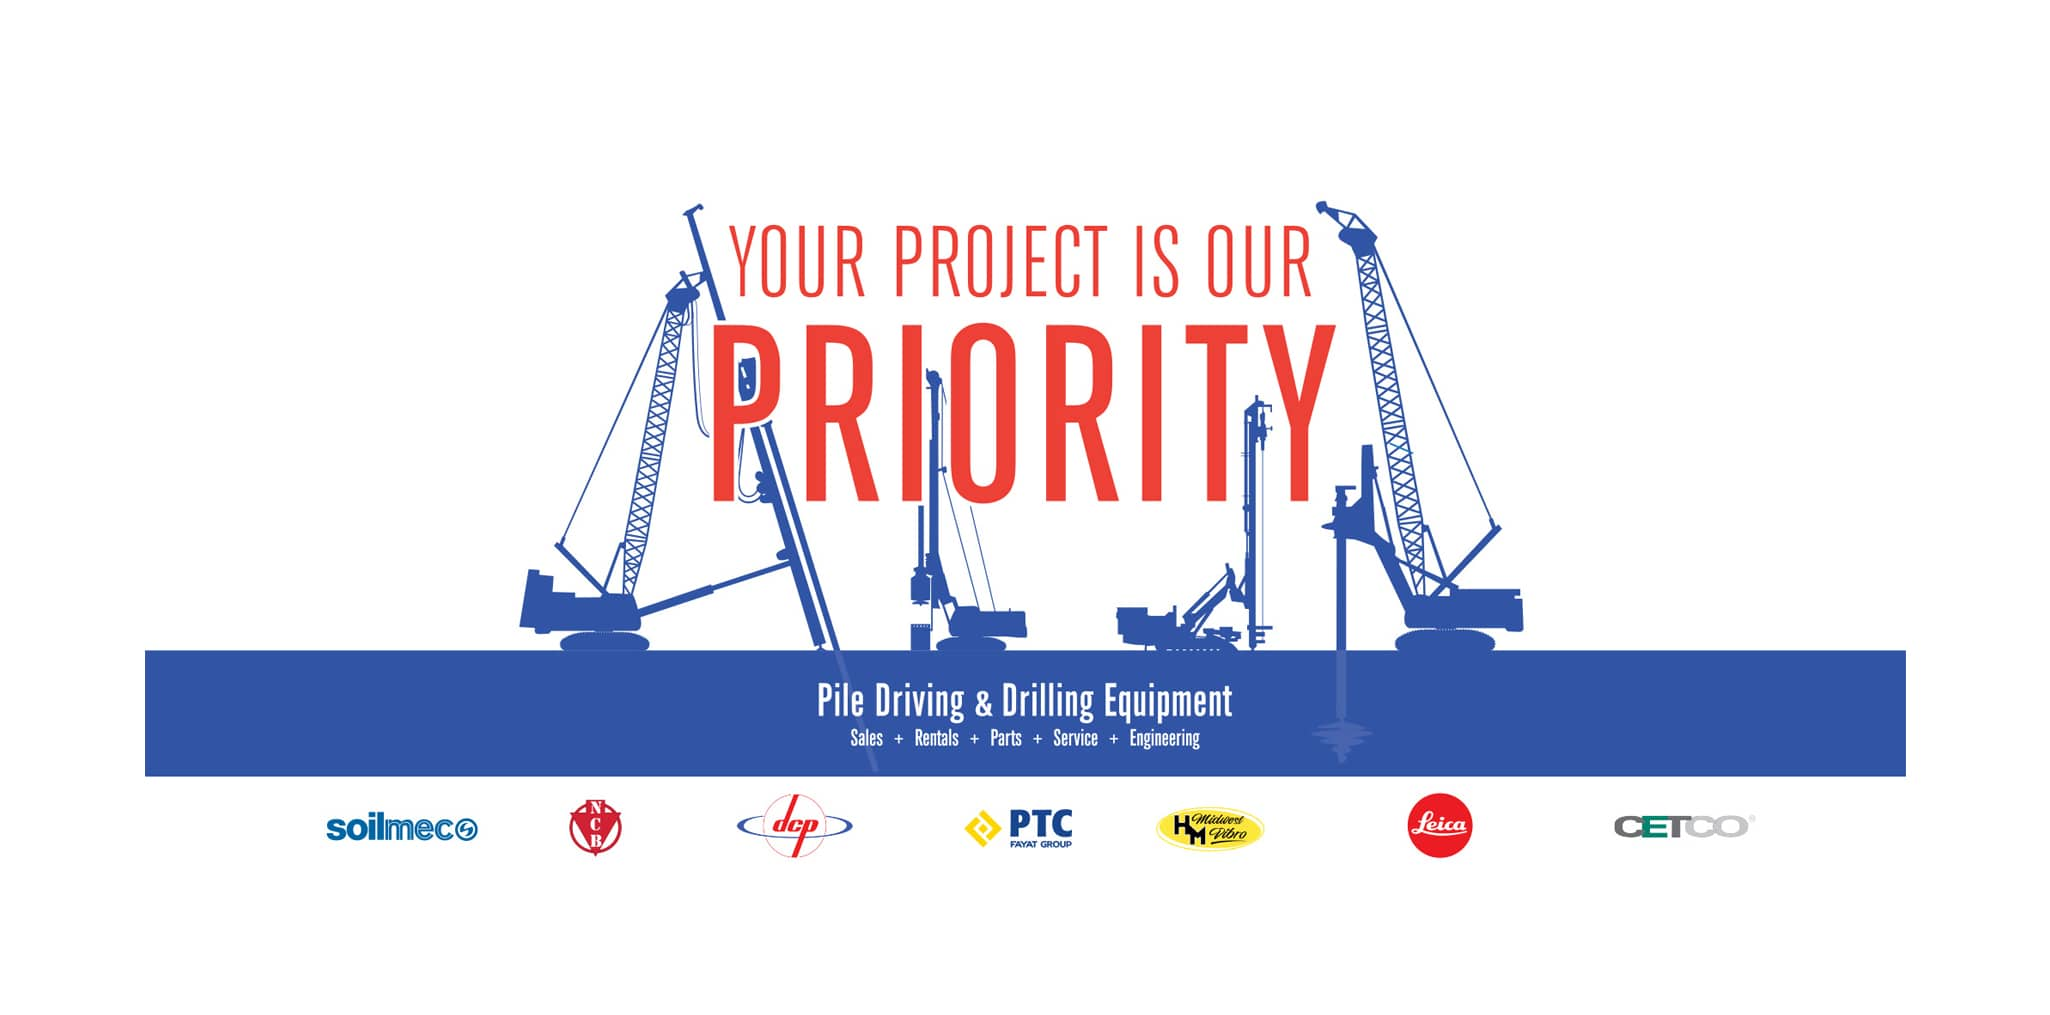 AEF_PRIORITY_HOMEPAGE_SLIDER.jpg